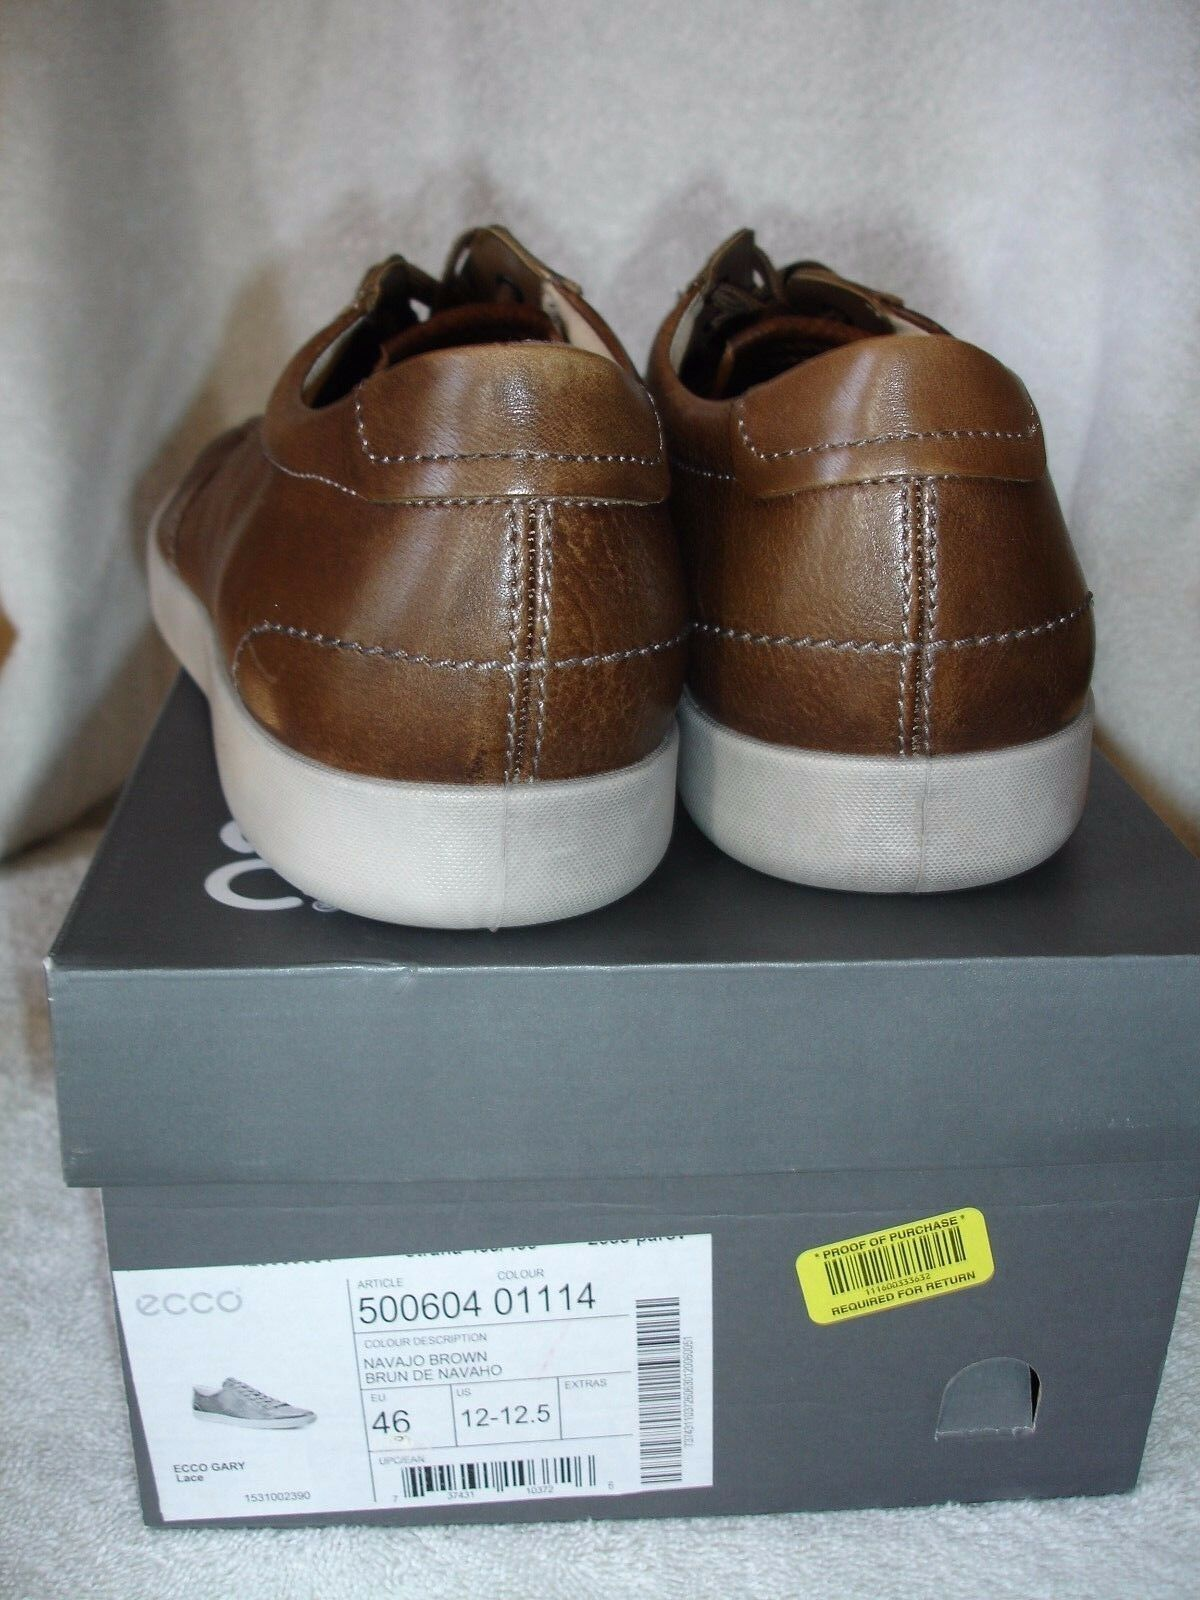 10df128879e1 ECCO Sz 12 to 12.5 EUR 46 Gary Lace Navajo Brown Leather SNEAKERS Mens  Shoes